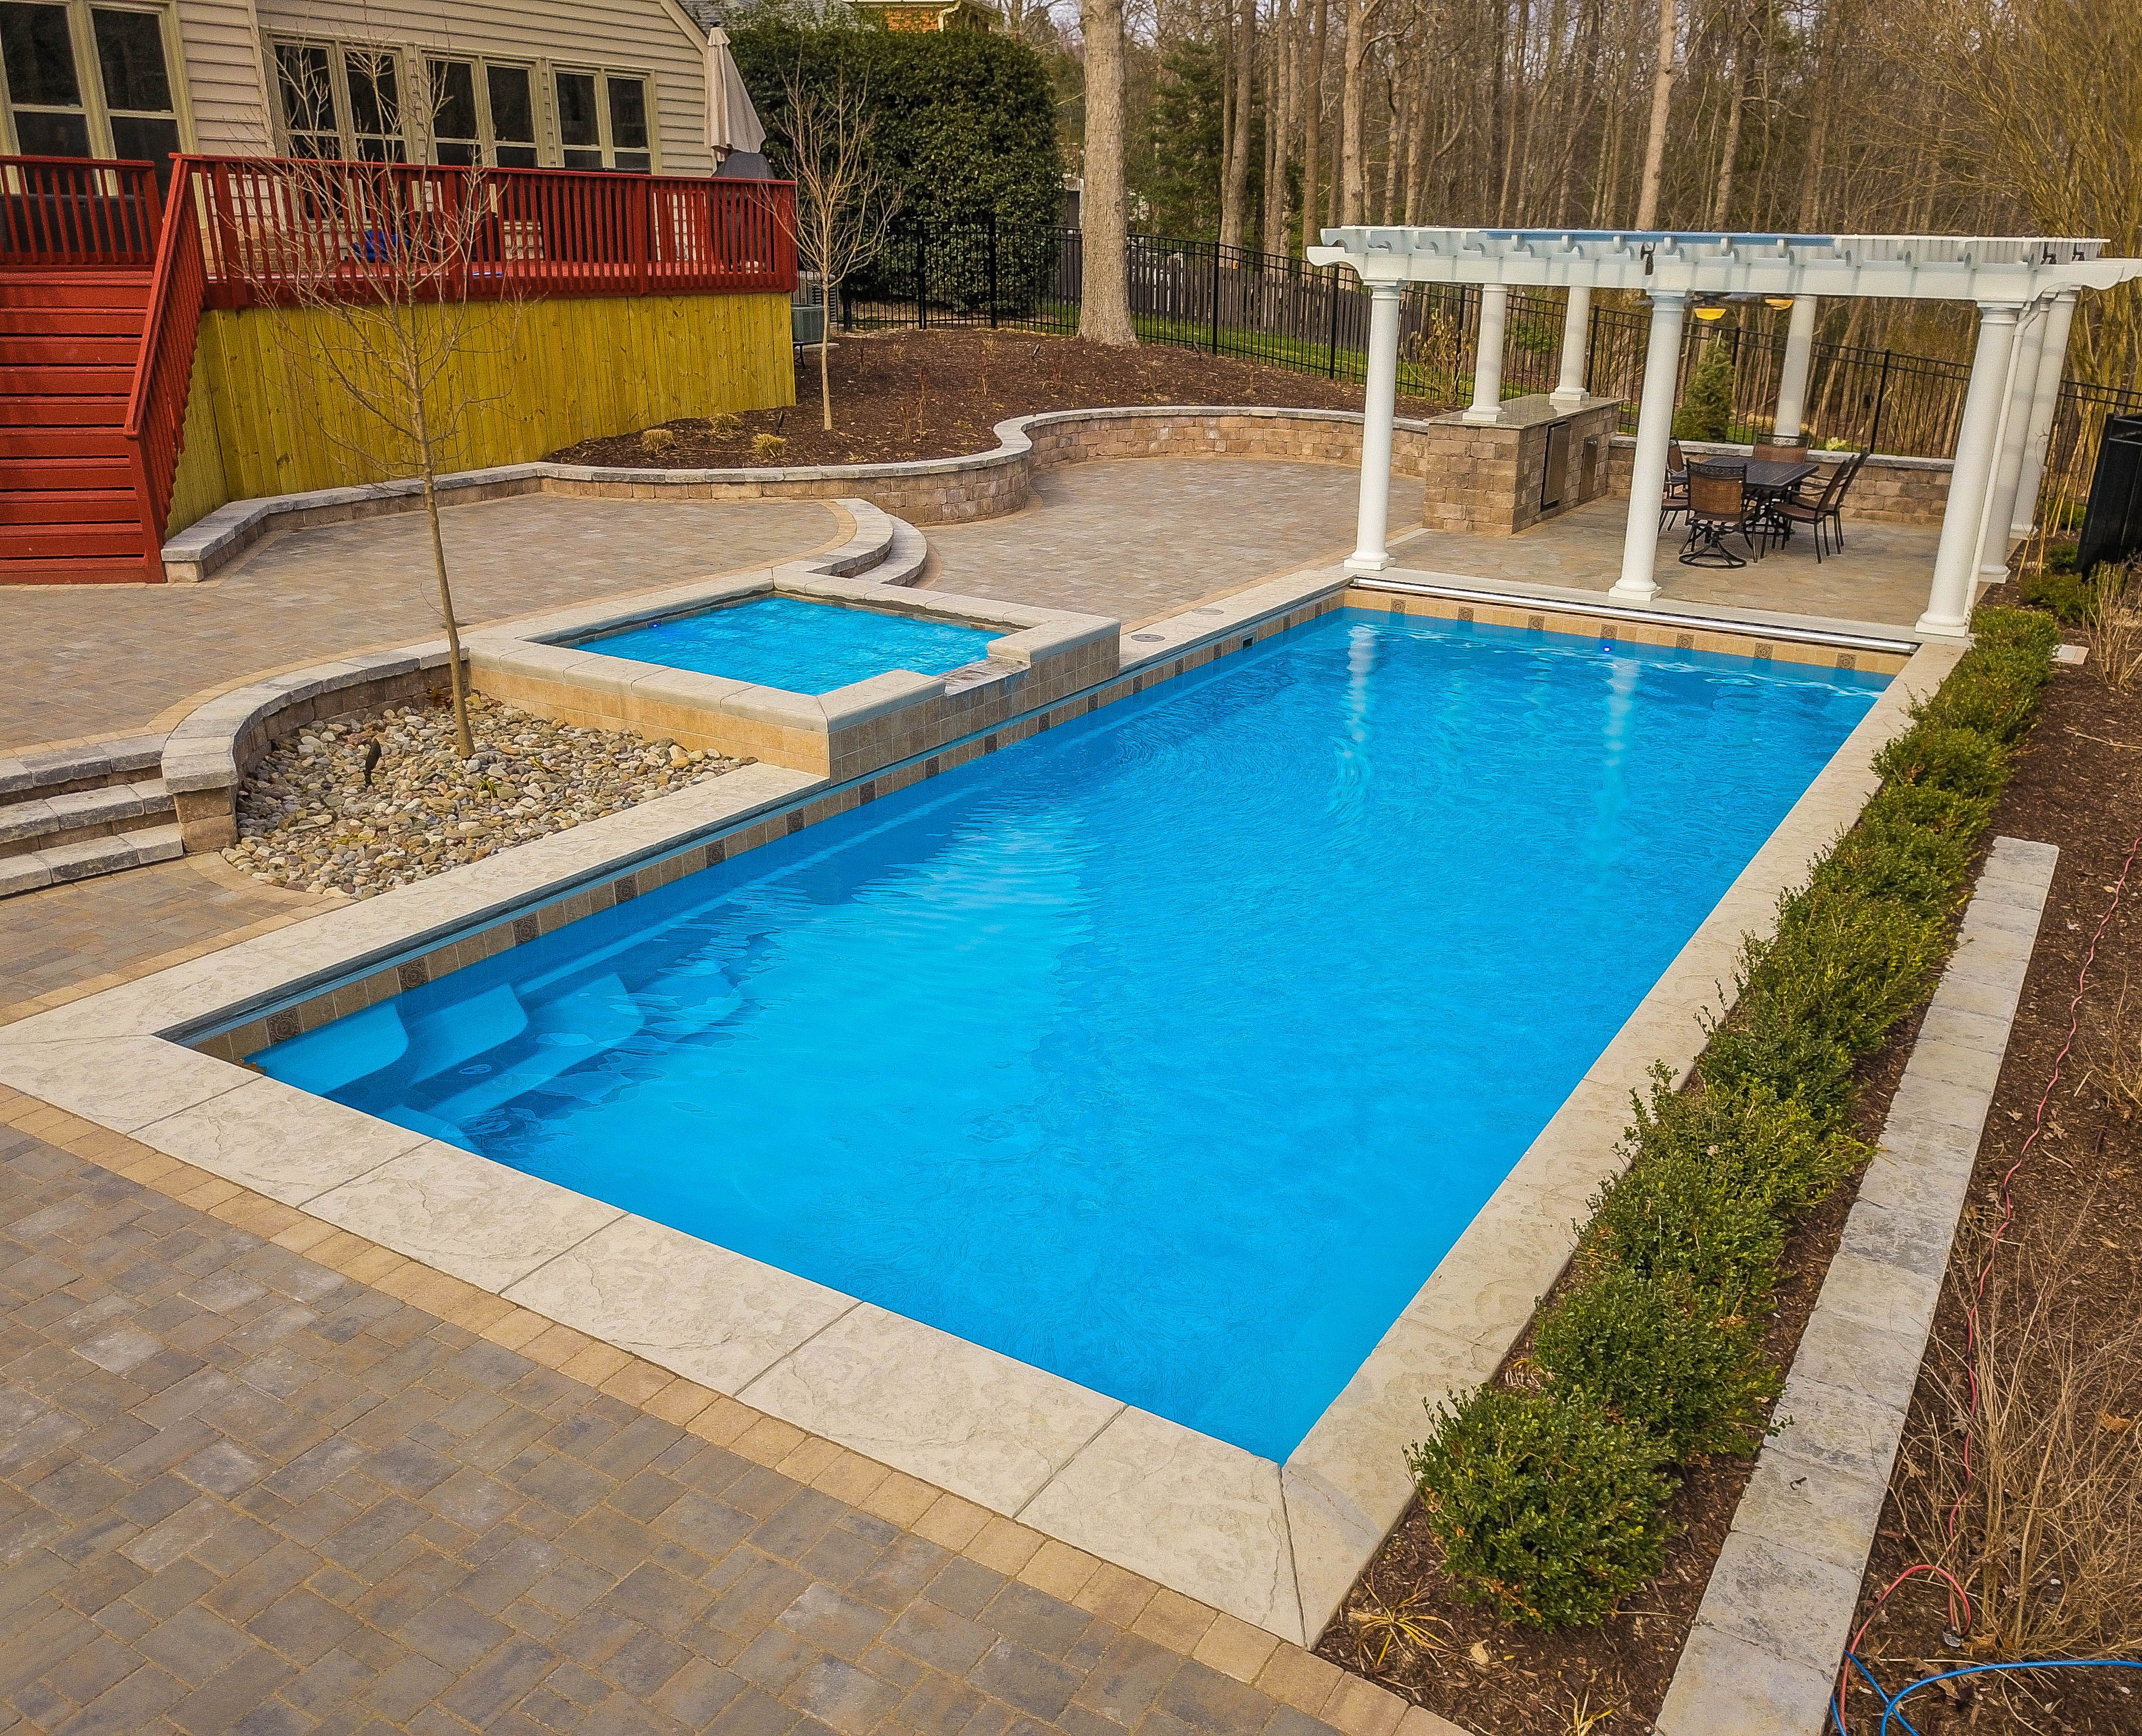 What Are The Best And Worst Types Of Swimming Pools And Why Fiberglass Pools Fiberglass Swimming Pools Inground Fiberglass Pools